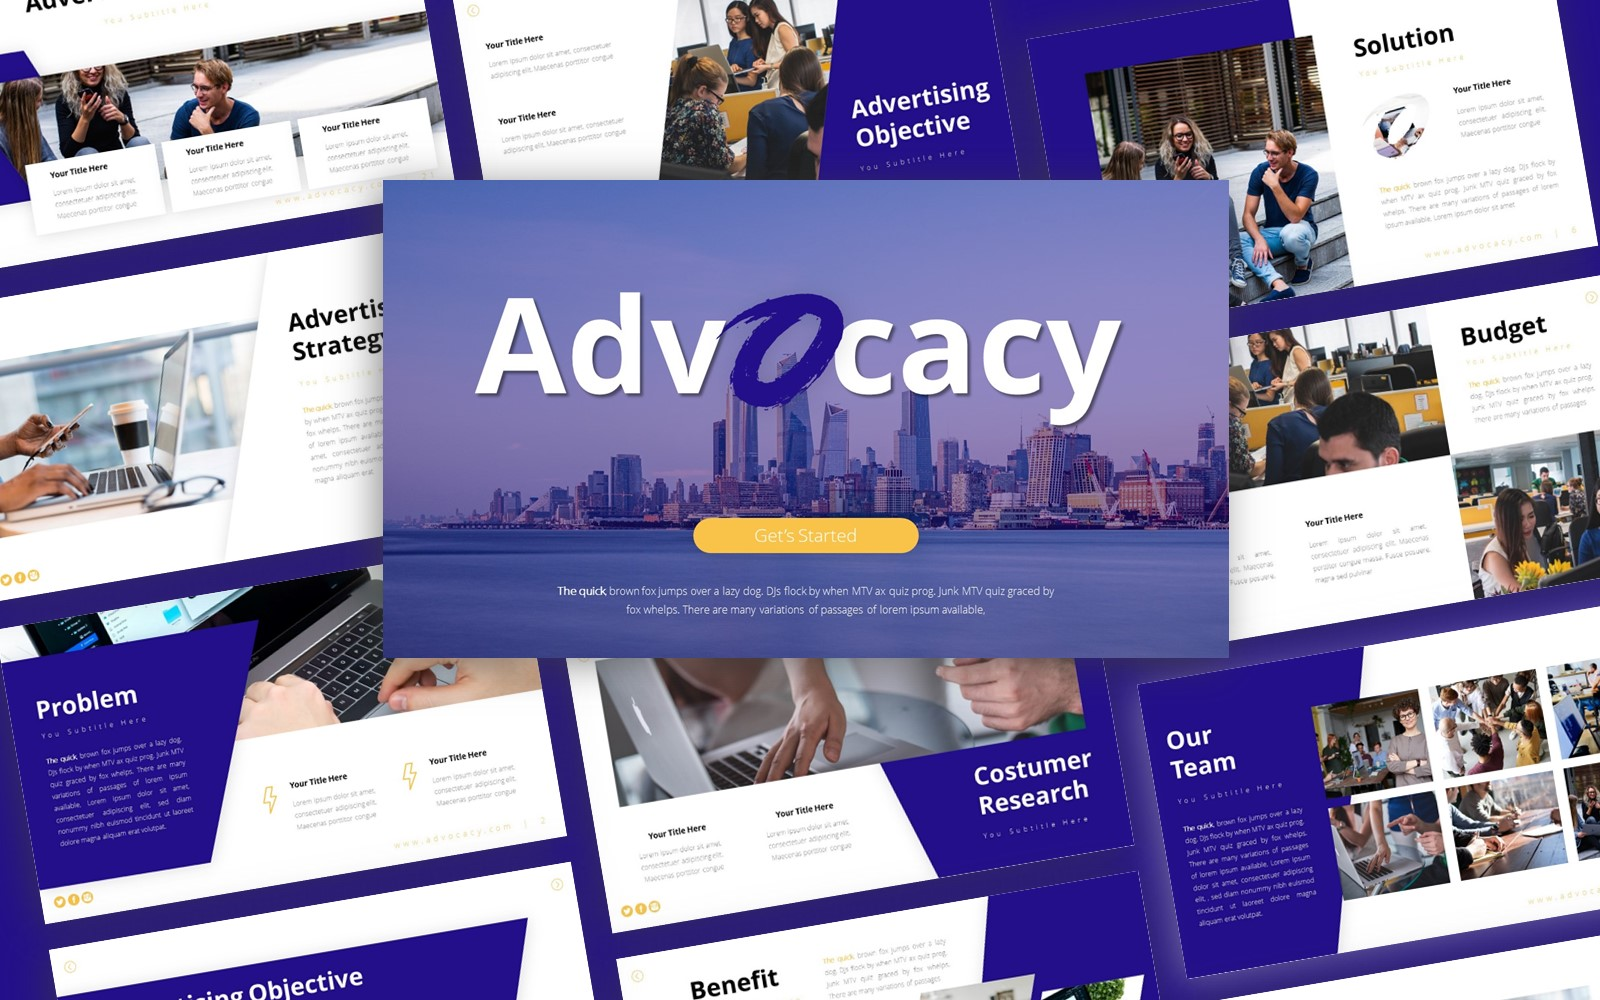 Advocacy Advertising Presentation PowerPoint Template